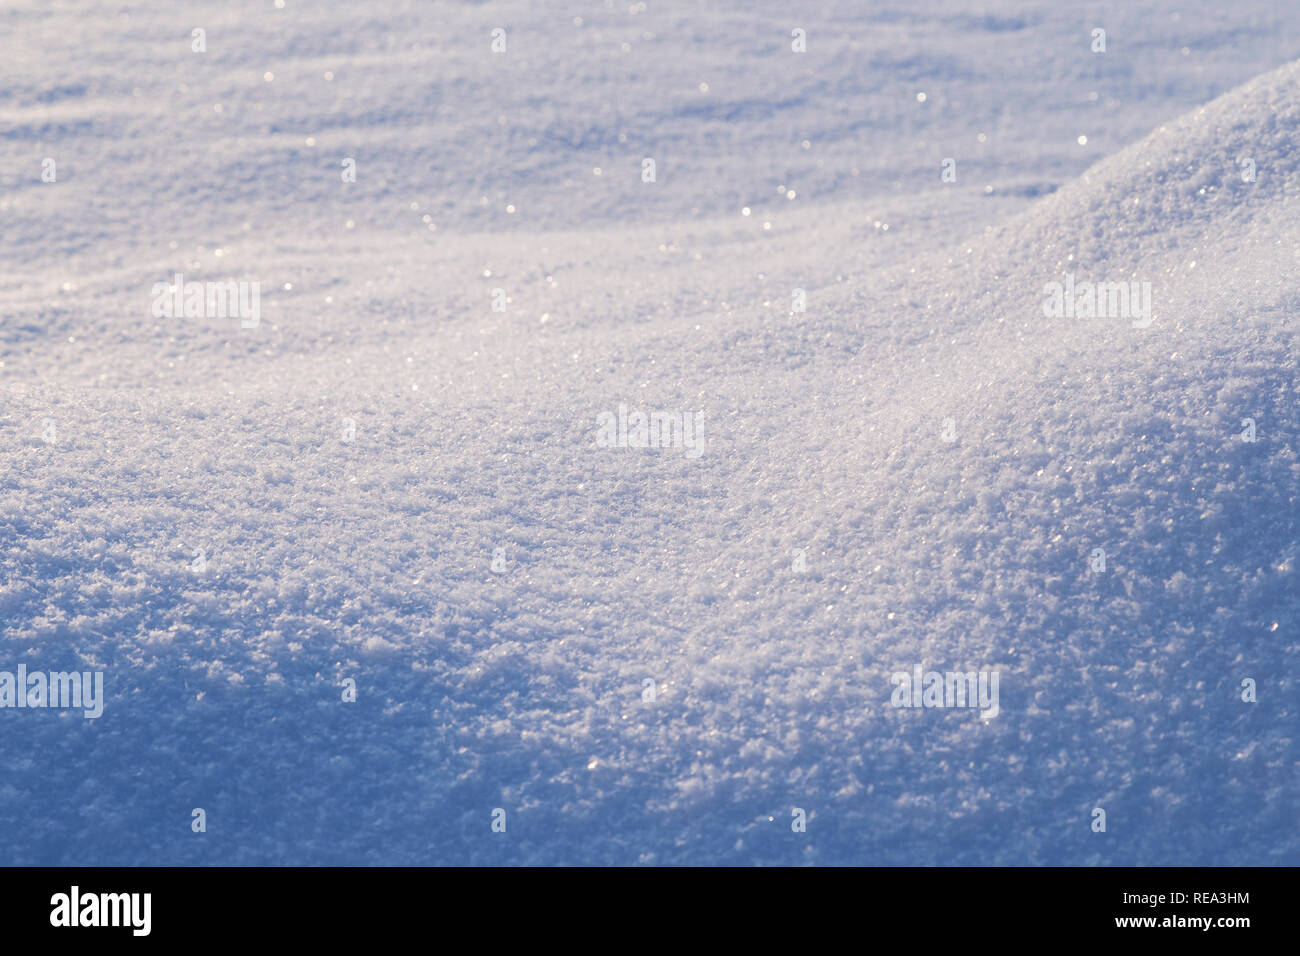 Fresh shiny snow on the ground and snowdrift on a sunny day, good as a winter season background. - Stock Image